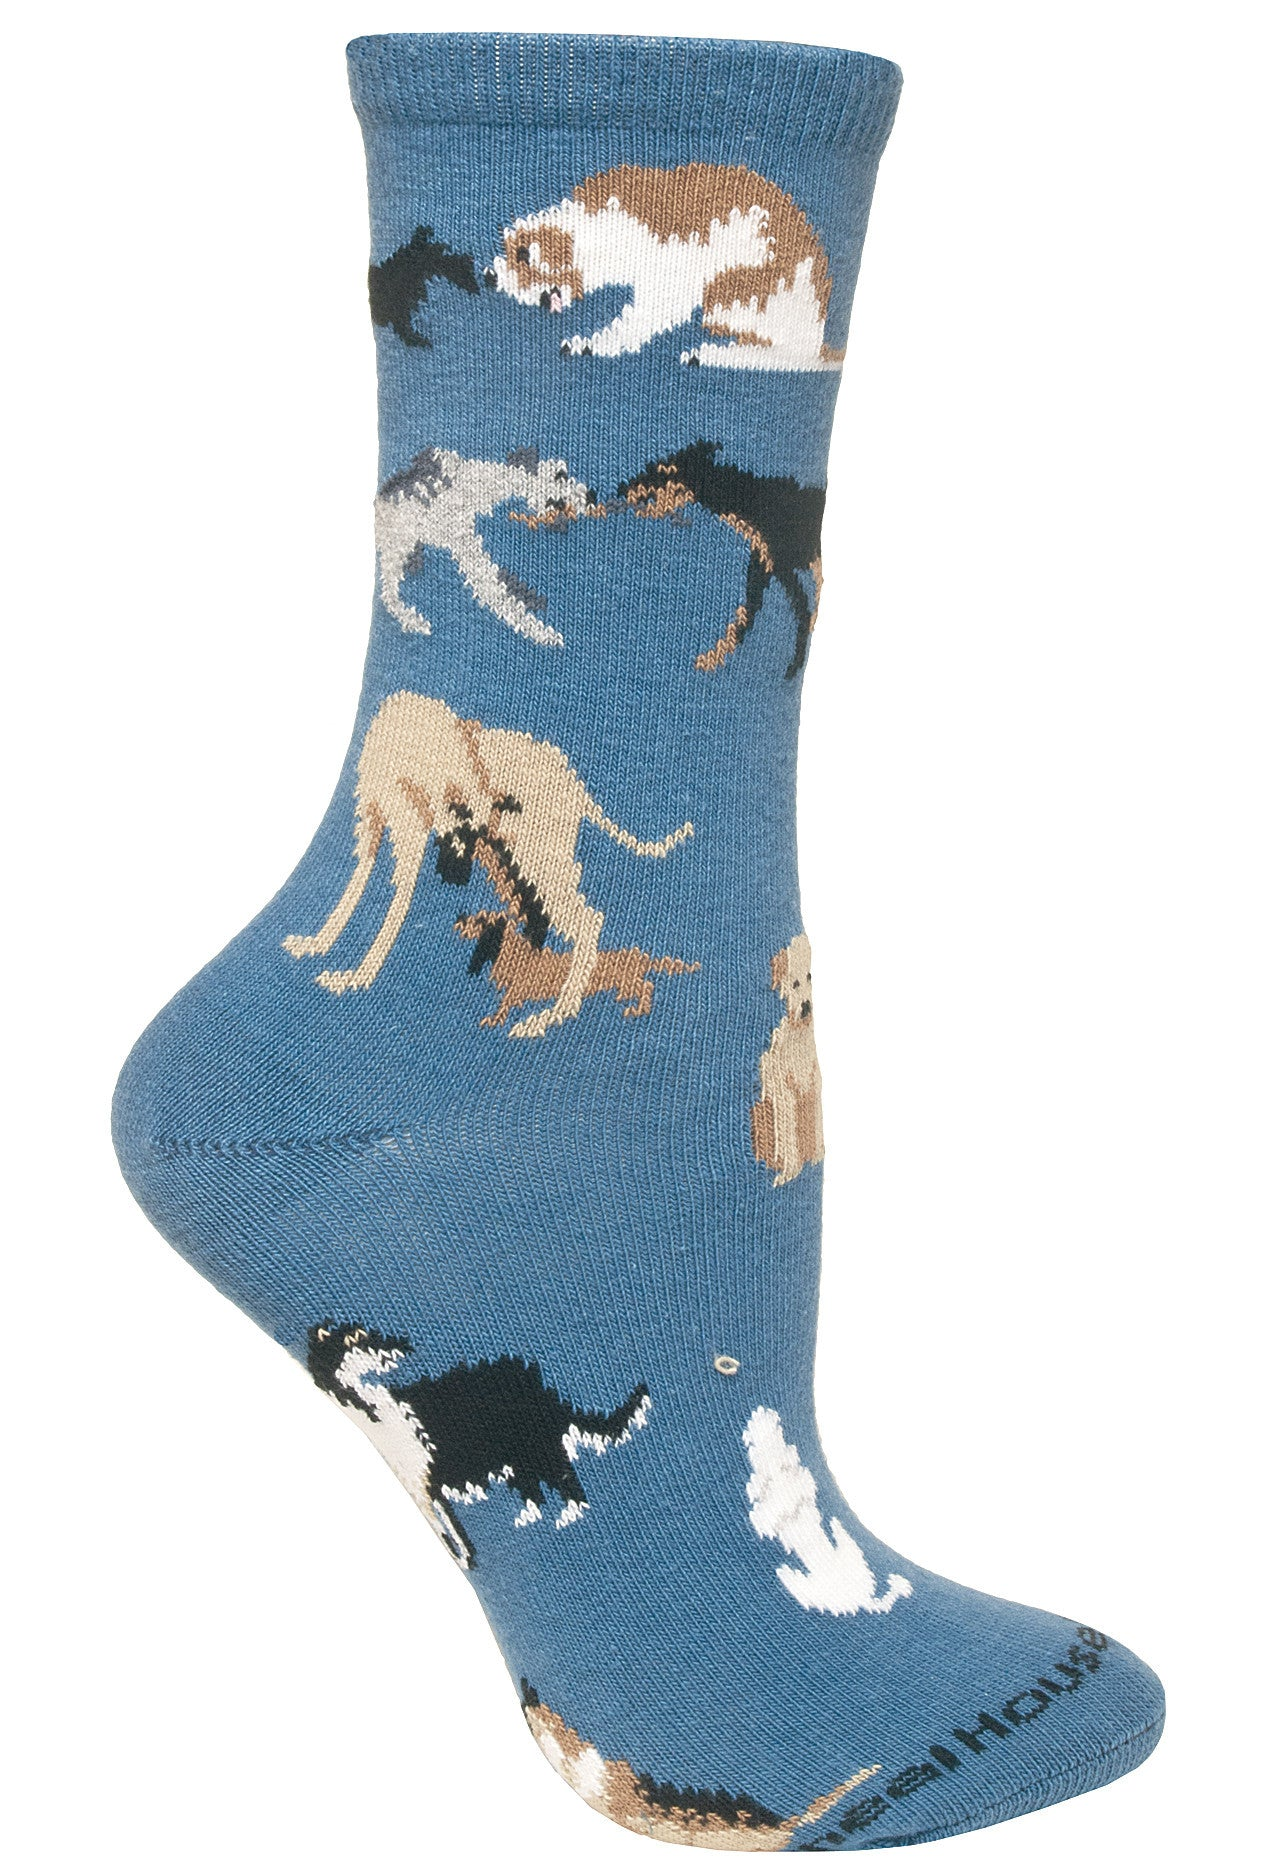 Dogs All Over on Blue Crew Socks